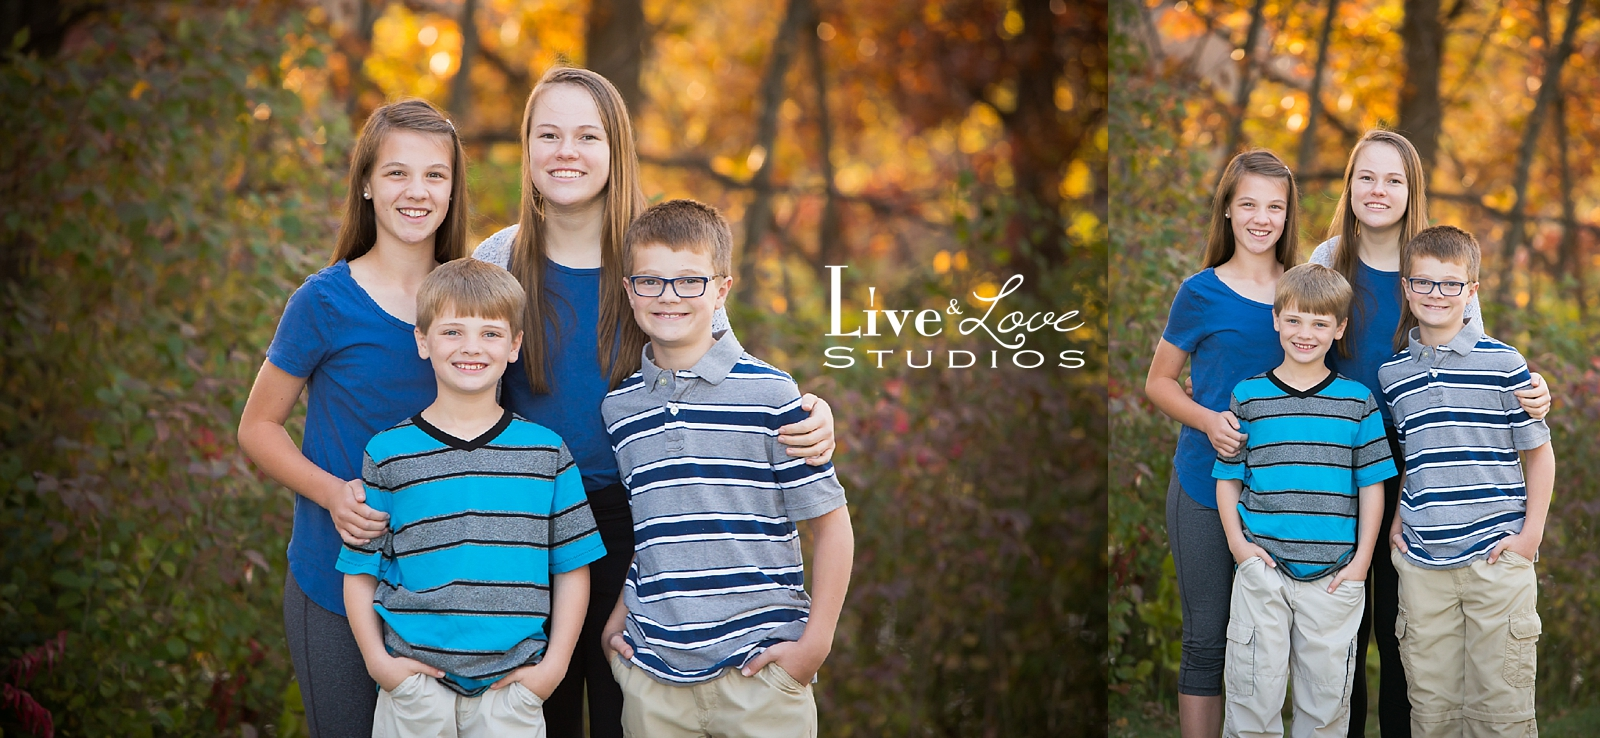 eagan-mn-family-photography_0078.jpg